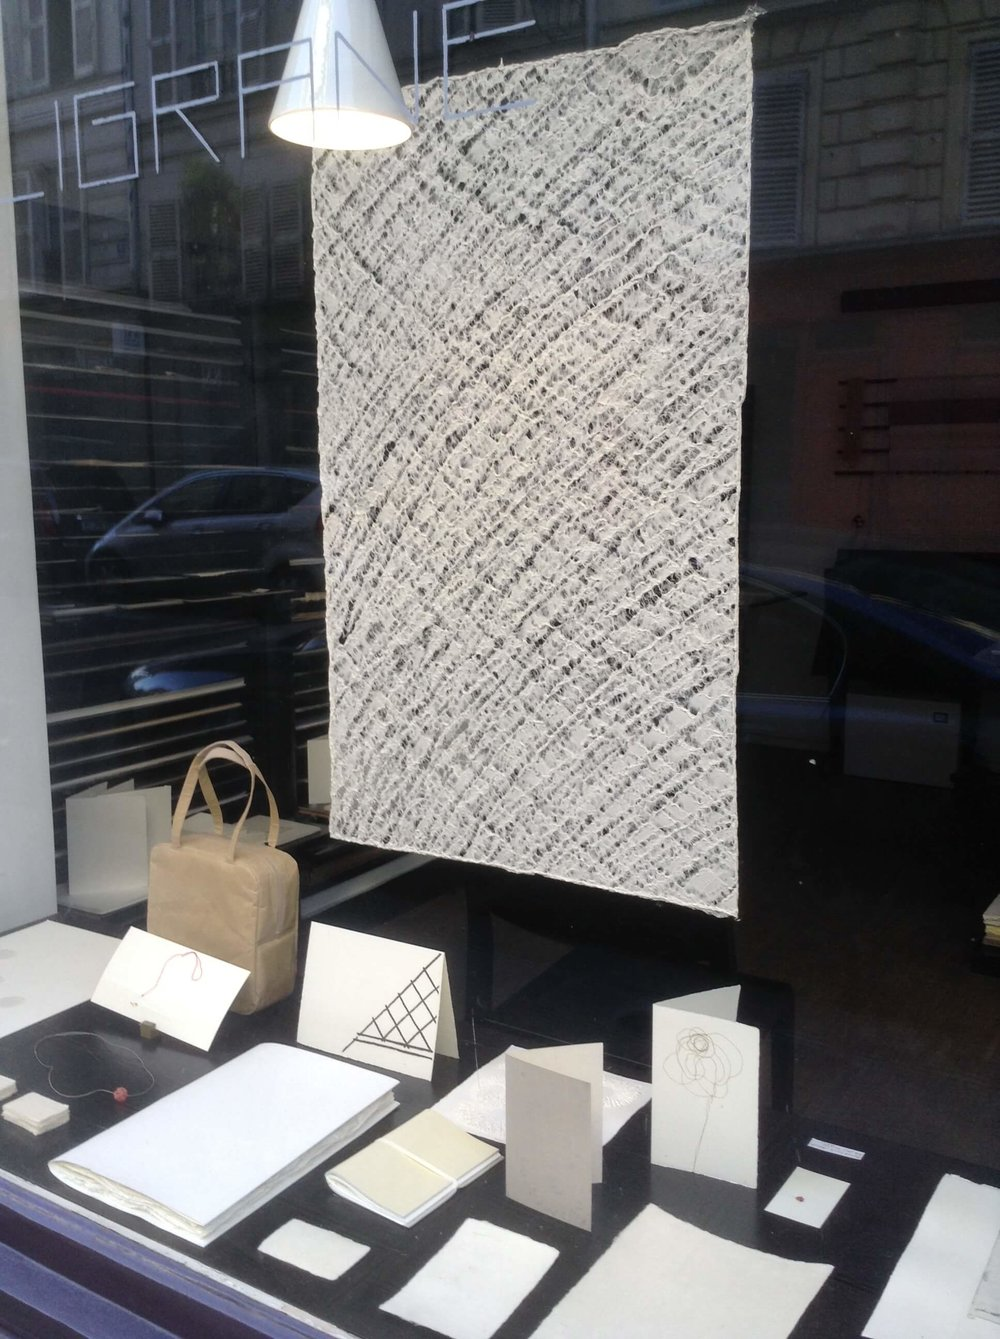 Calligraine Paper Shop, Paris